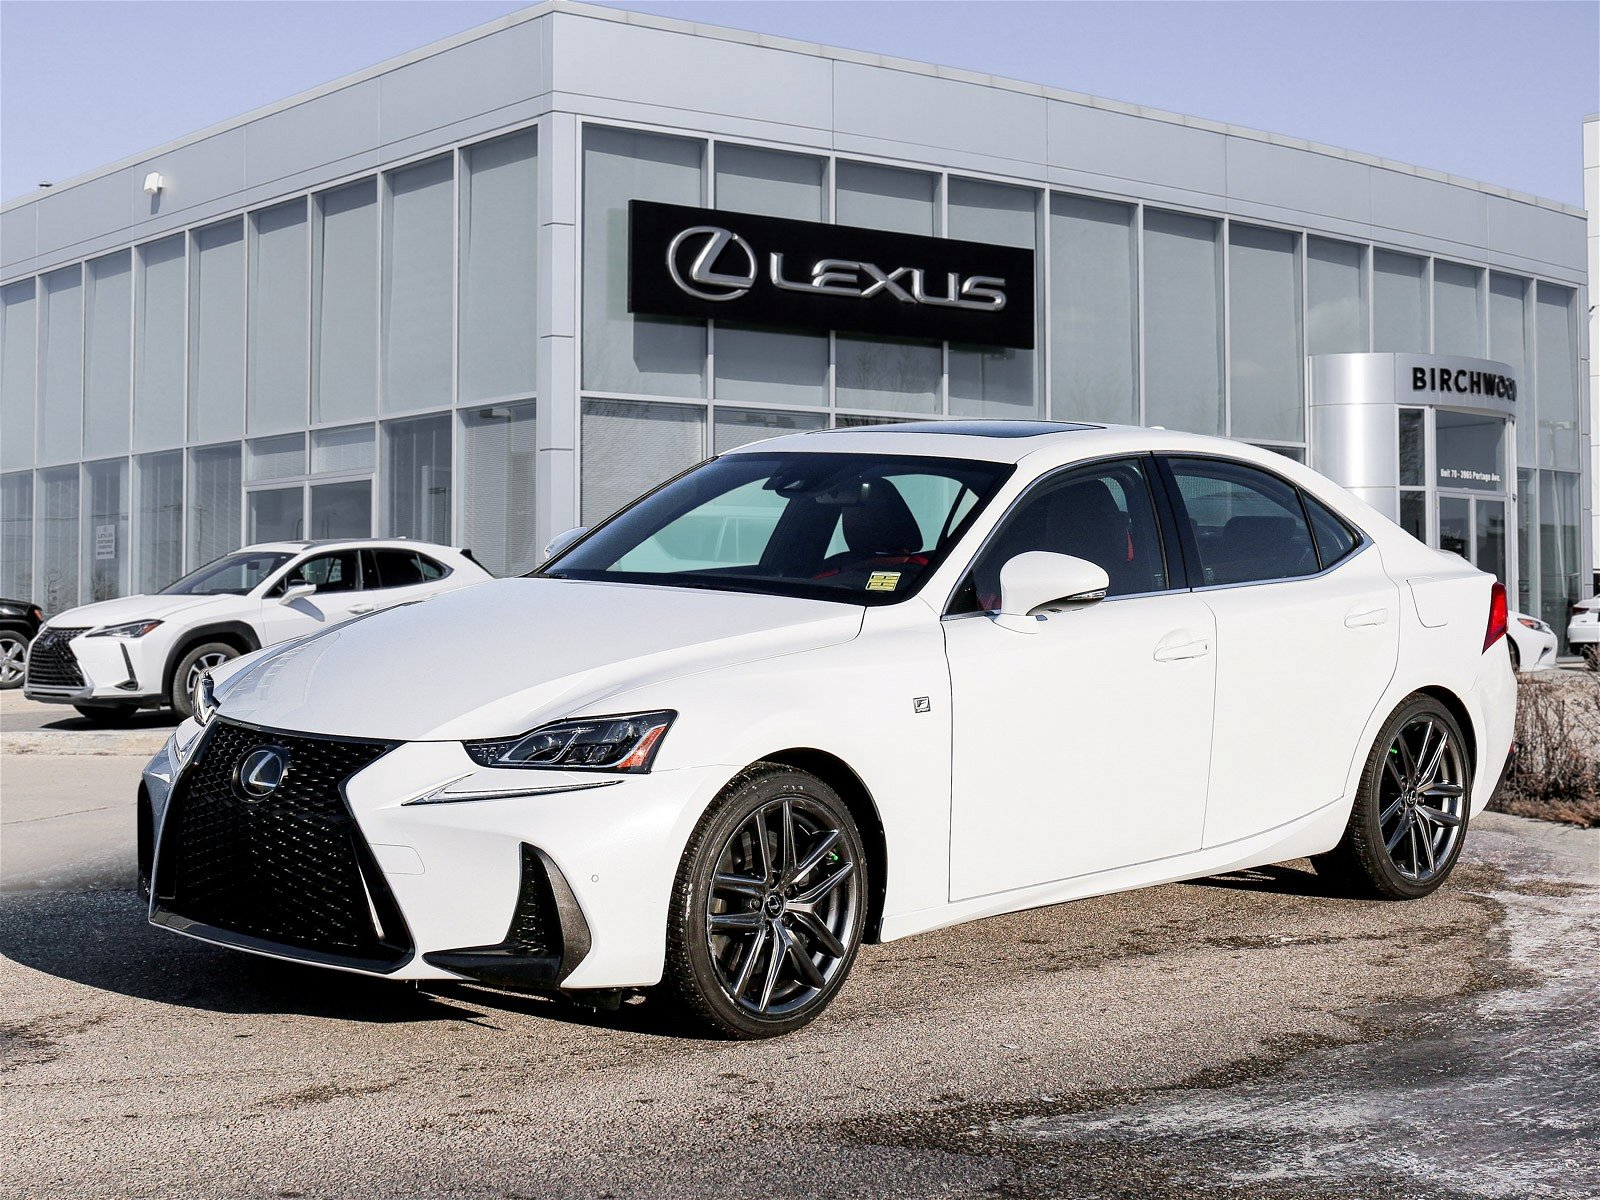 2020 lexus is 350 f sport, stock no. lx20063 - birchwood lexus